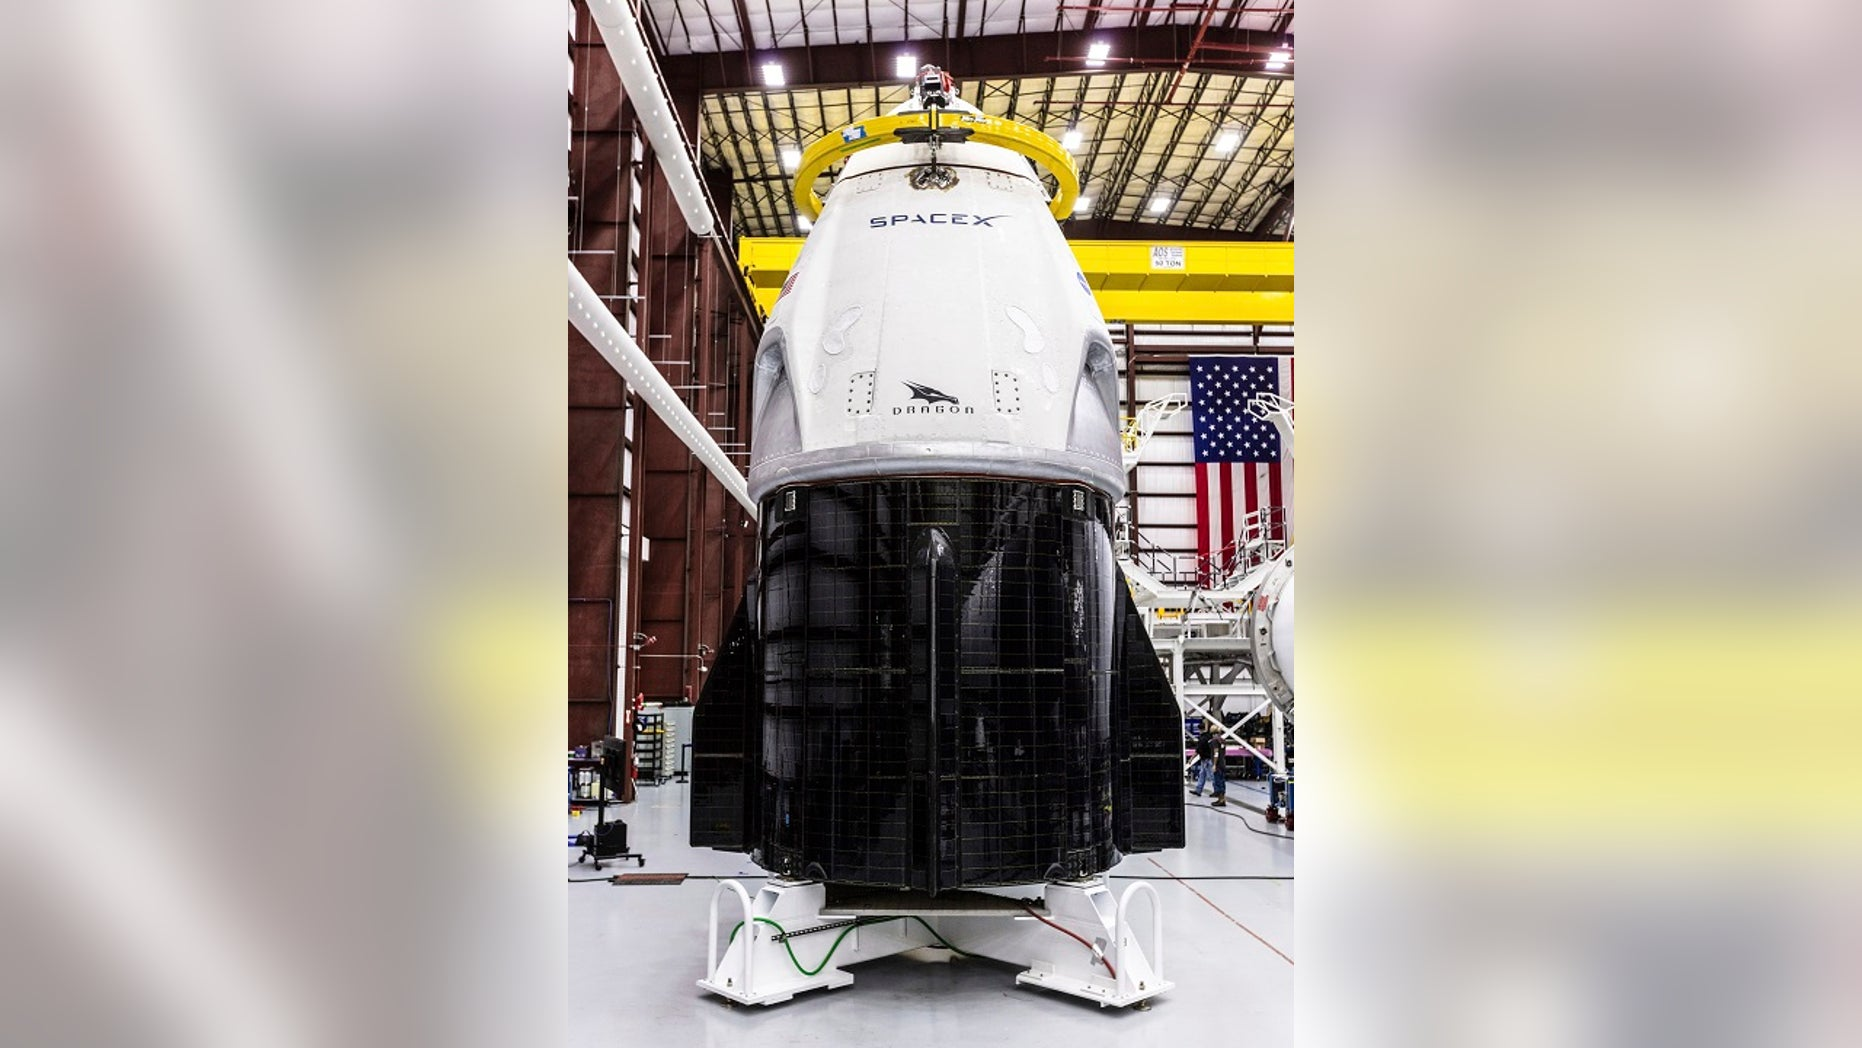 SpaceX's Crew Dragon spacecraft and Falcon 9 rocket are positioned inside the company's hangar at Launch Complex 39A at NASA's Kennedy Space Center in Florida. (Space X via AP)